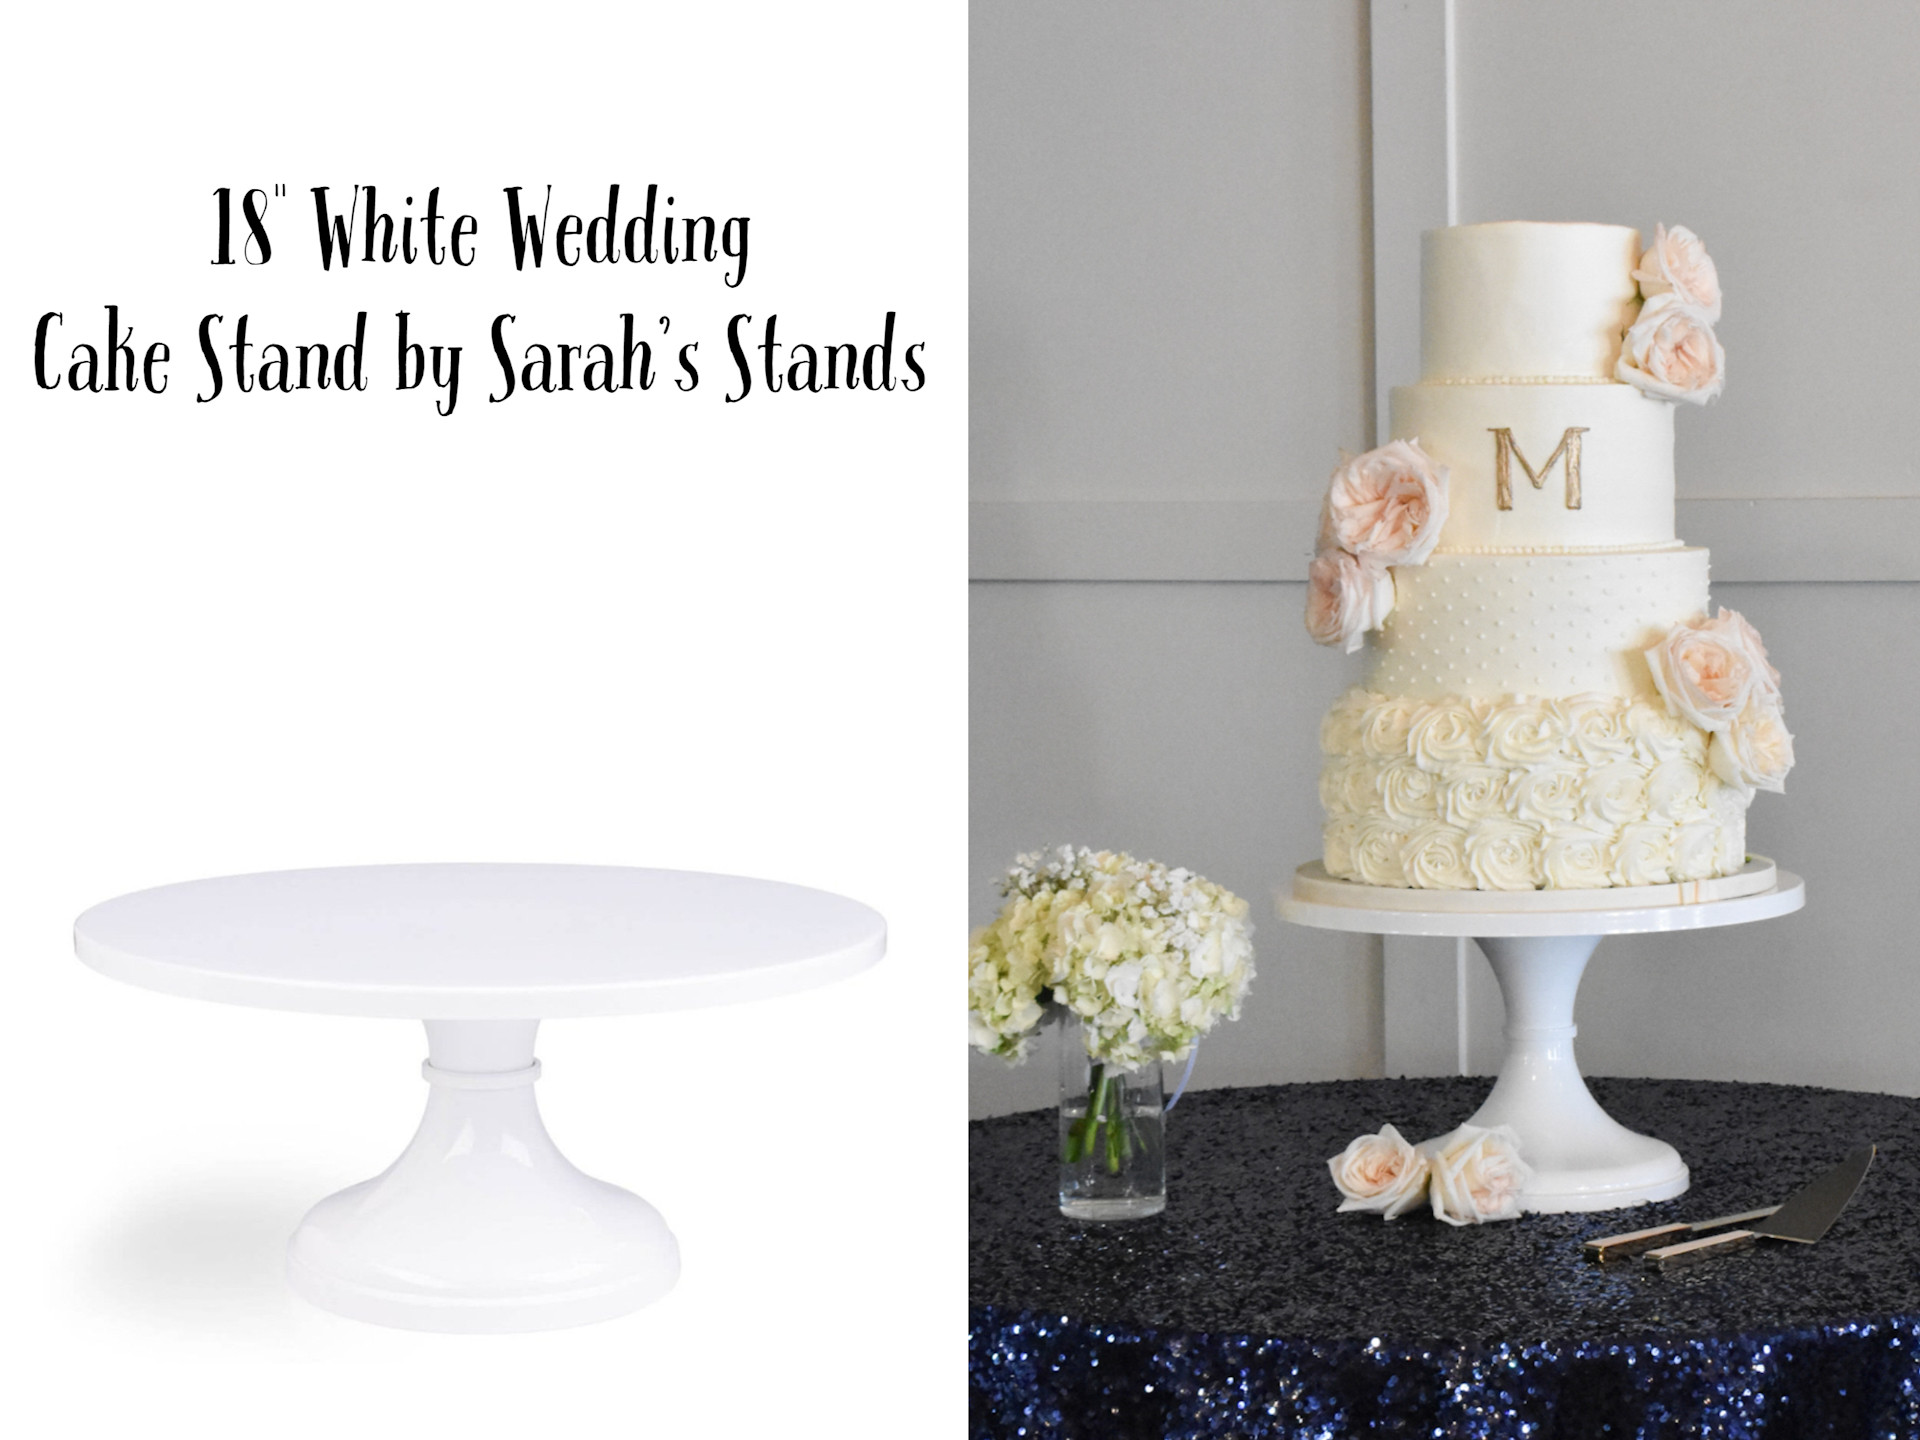 """18"""" White Wedding Cake Stand by Sarah's Stands"""